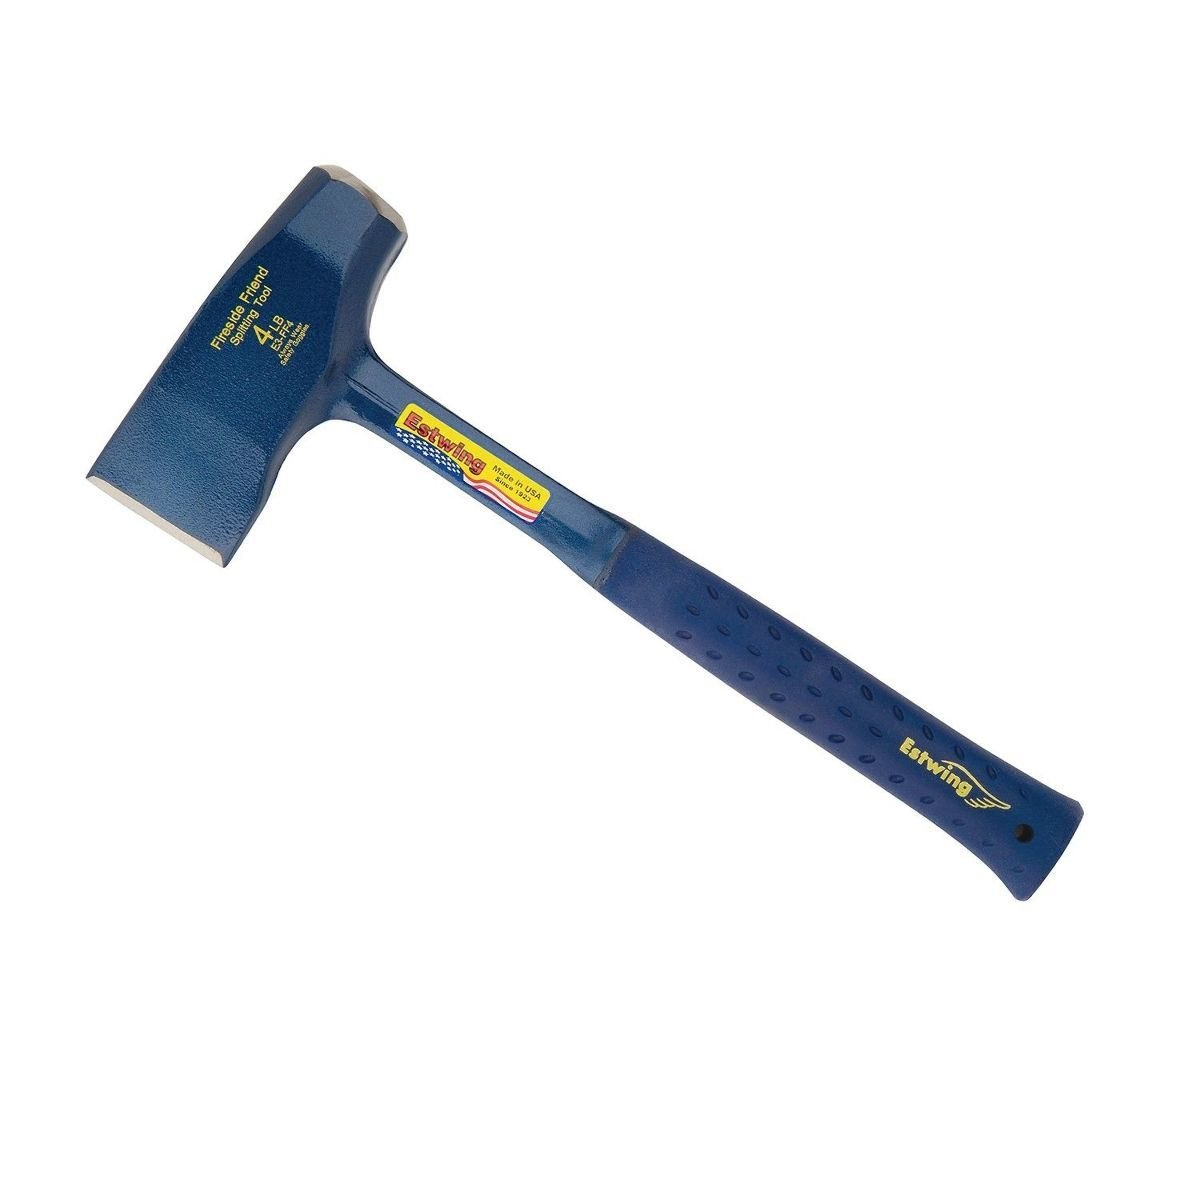 Estwing Fireside Friend Axe - 14'' Wood Splitting Maul with Forged Steel Construction & Shock Reduction Grip - E3-FF4